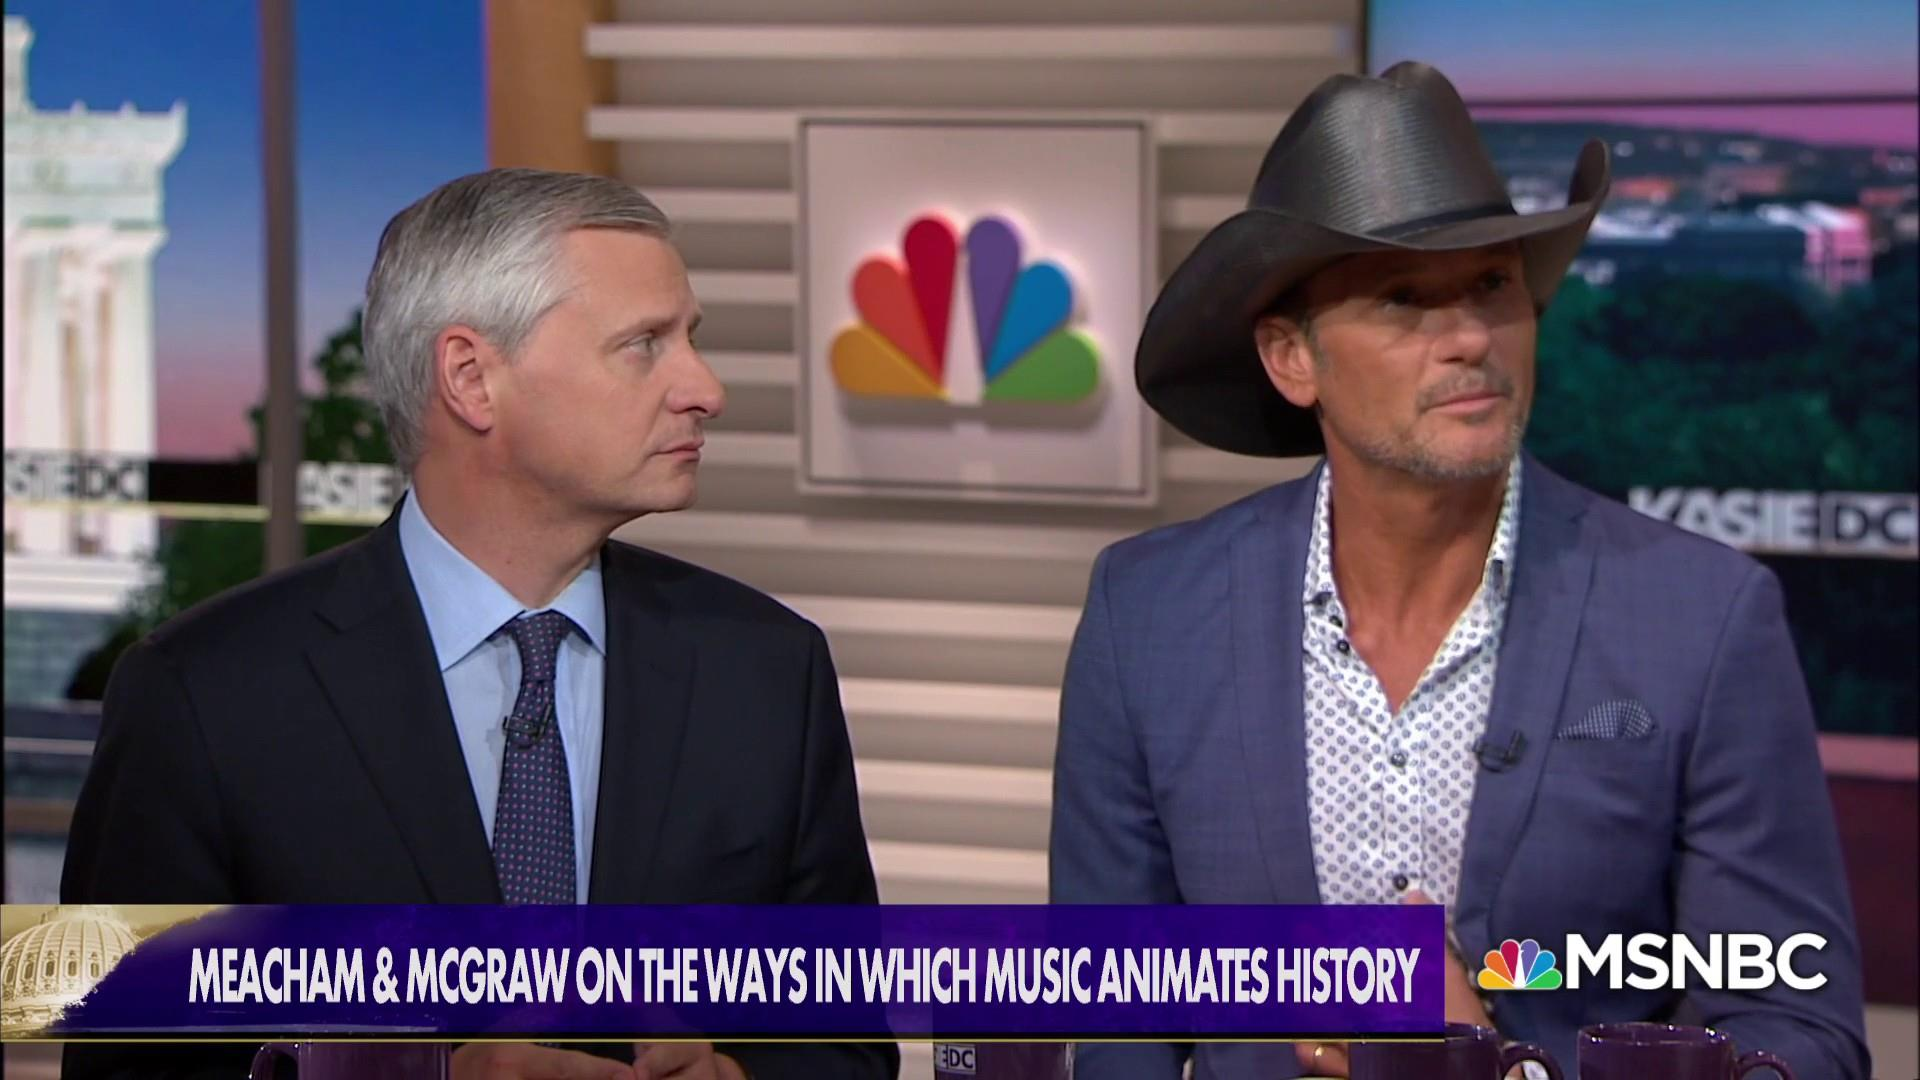 'Songs of America': Tim McGraw & Jon Meacham trace history through music